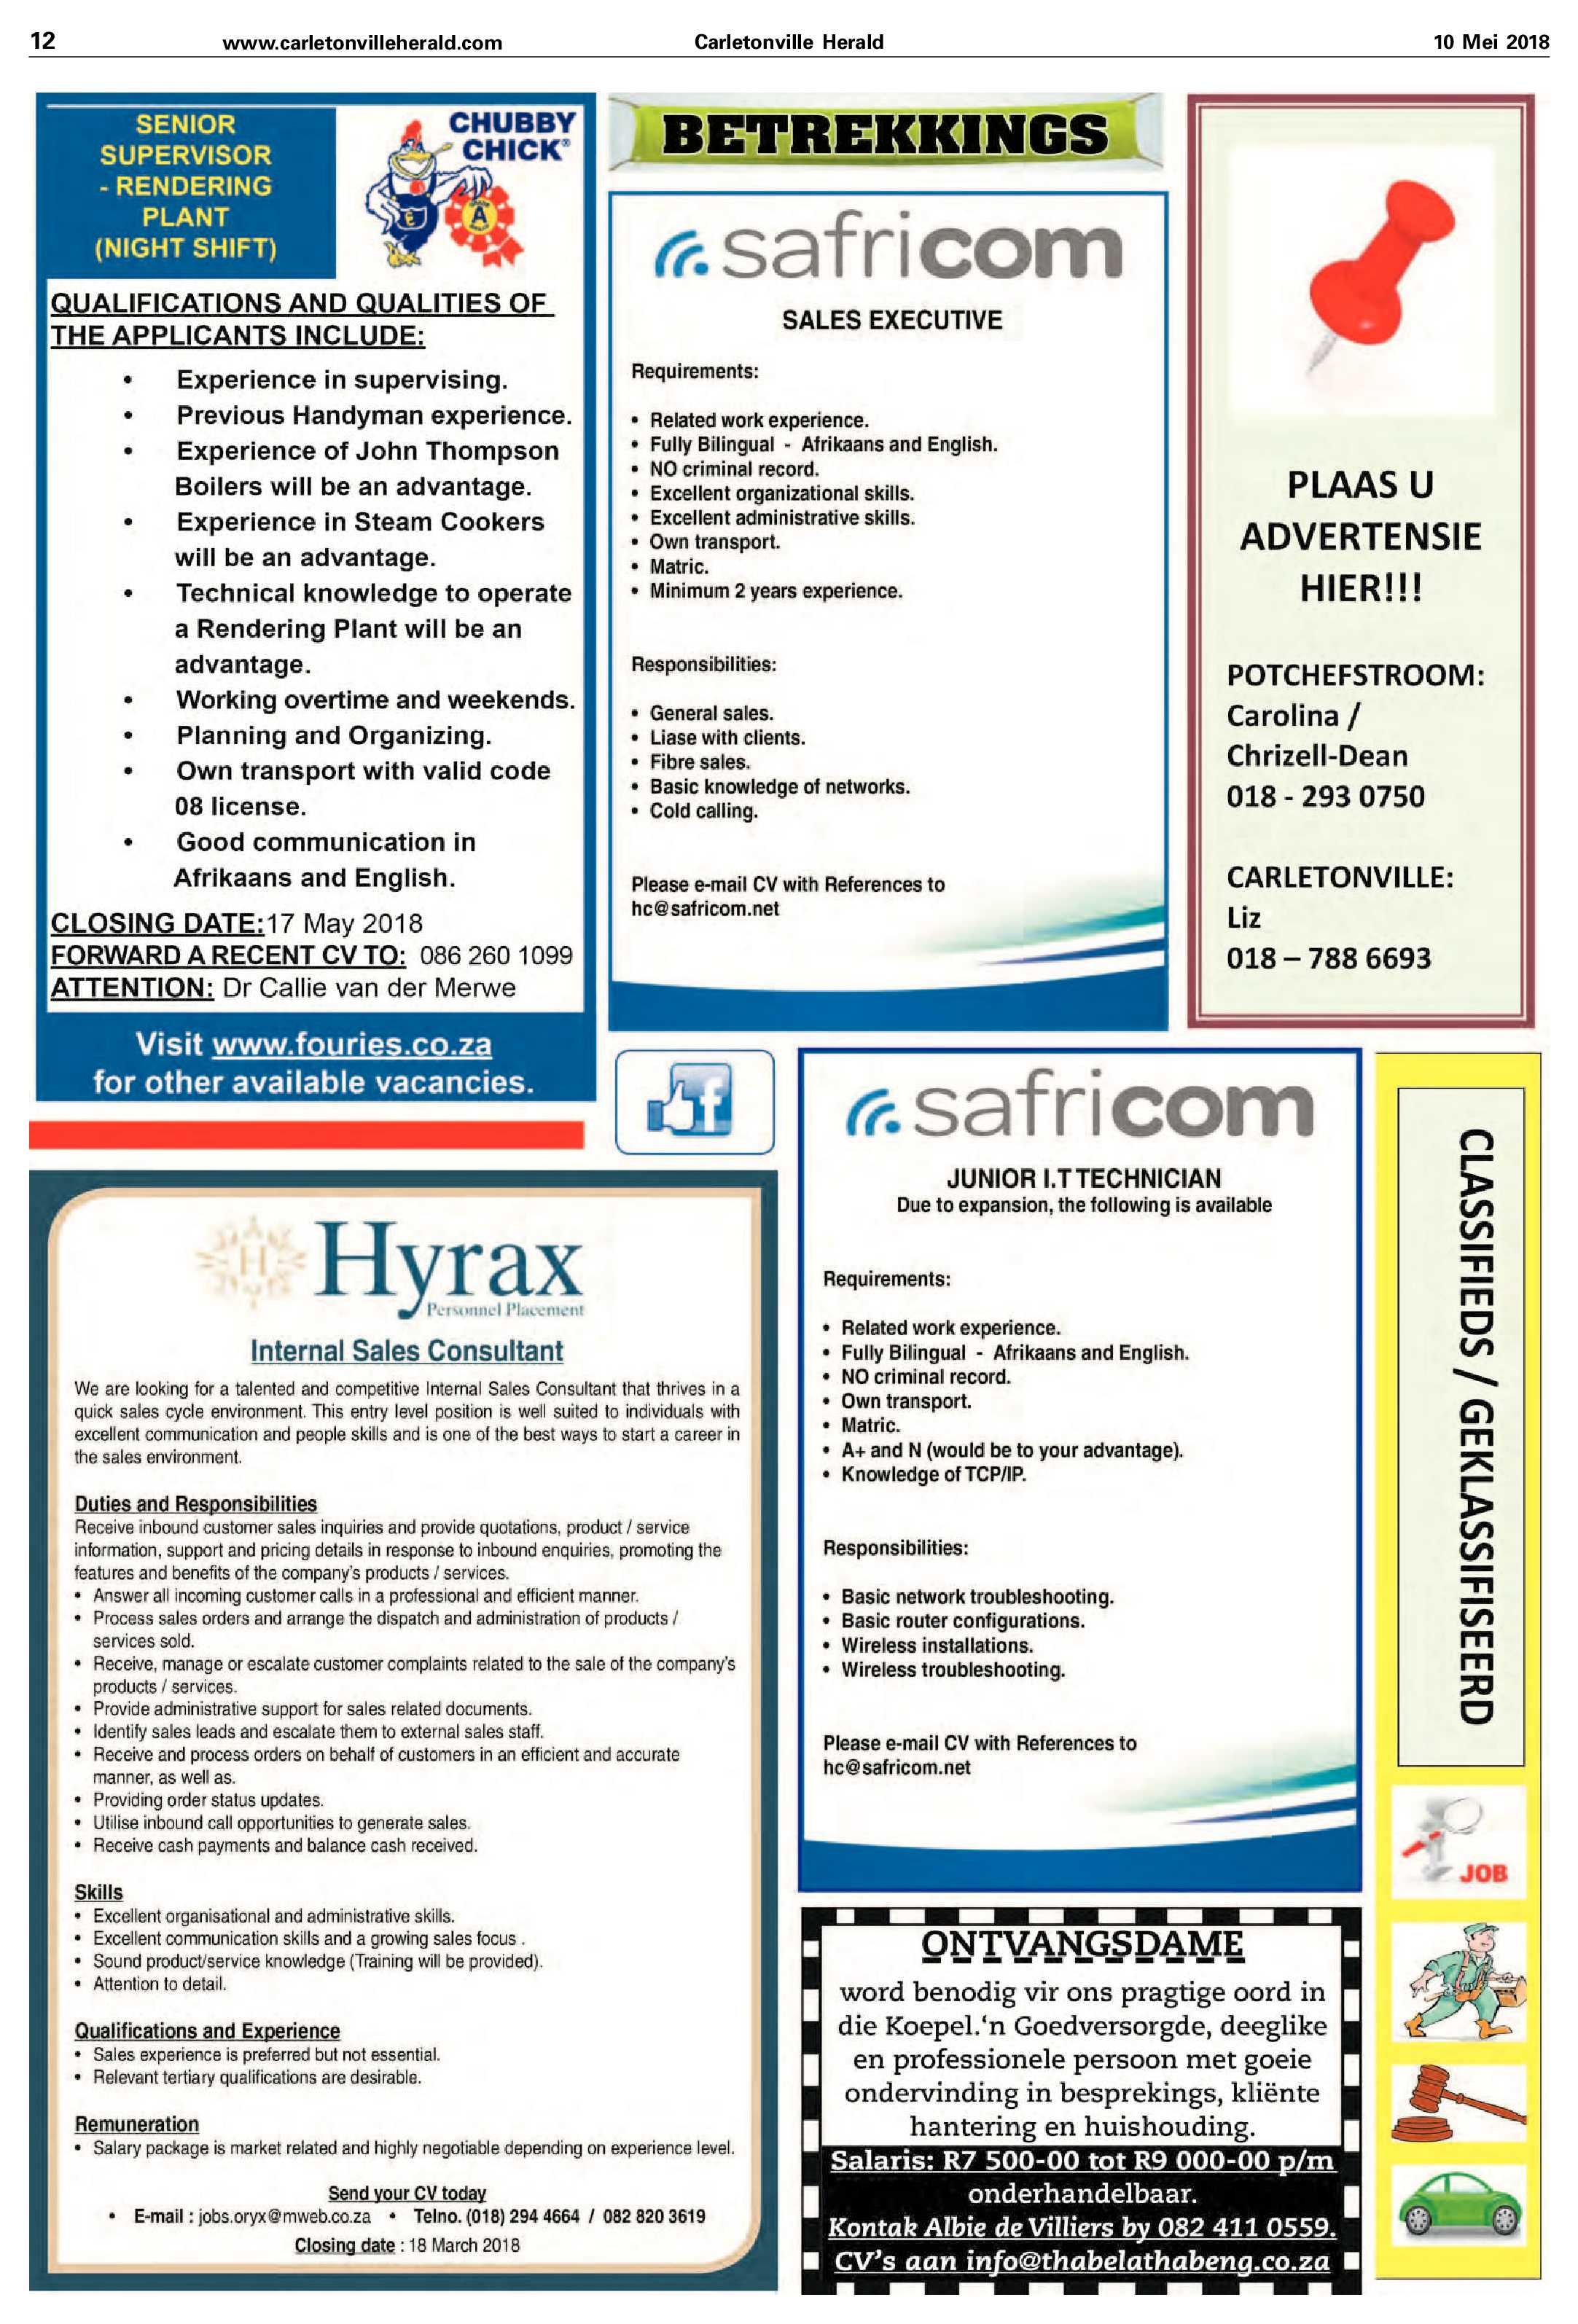 10-may-2018-epapers-page-12